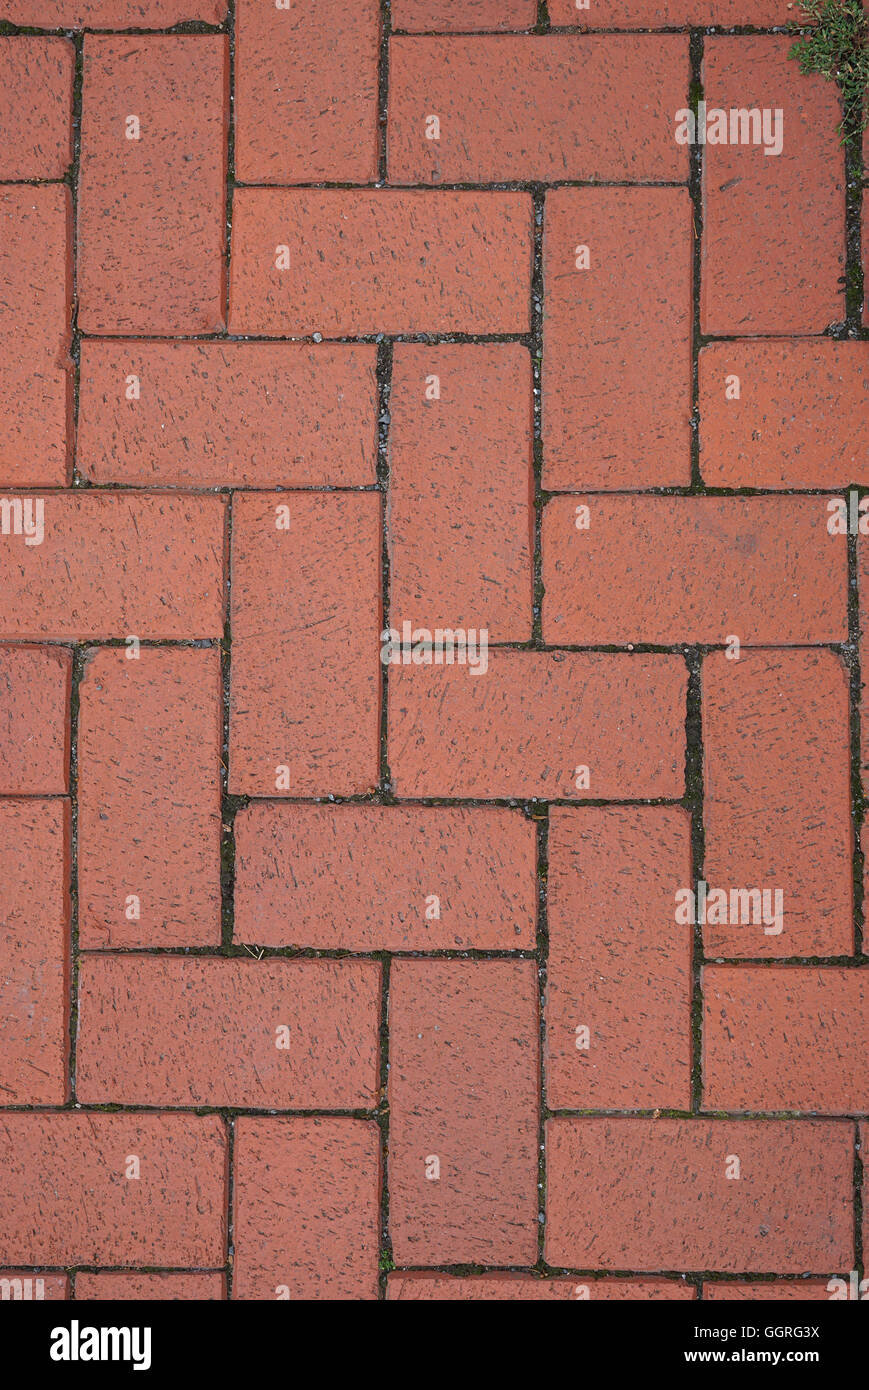 Red Paving Stones : Red brick paving stones stock photo royalty free image